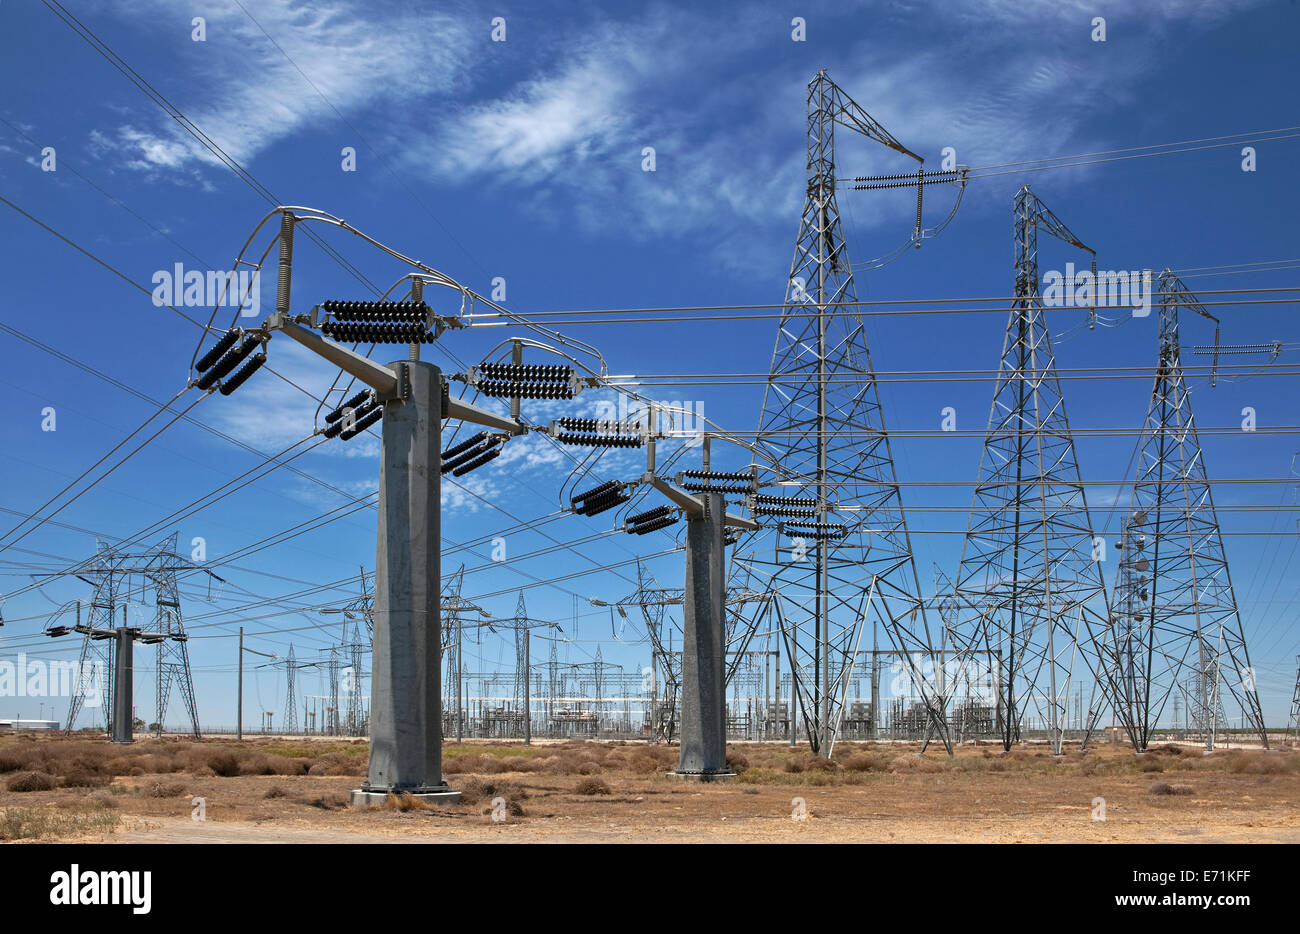 A substation is a part of an electrical generation, transmission, and distribution system. - Stock Image